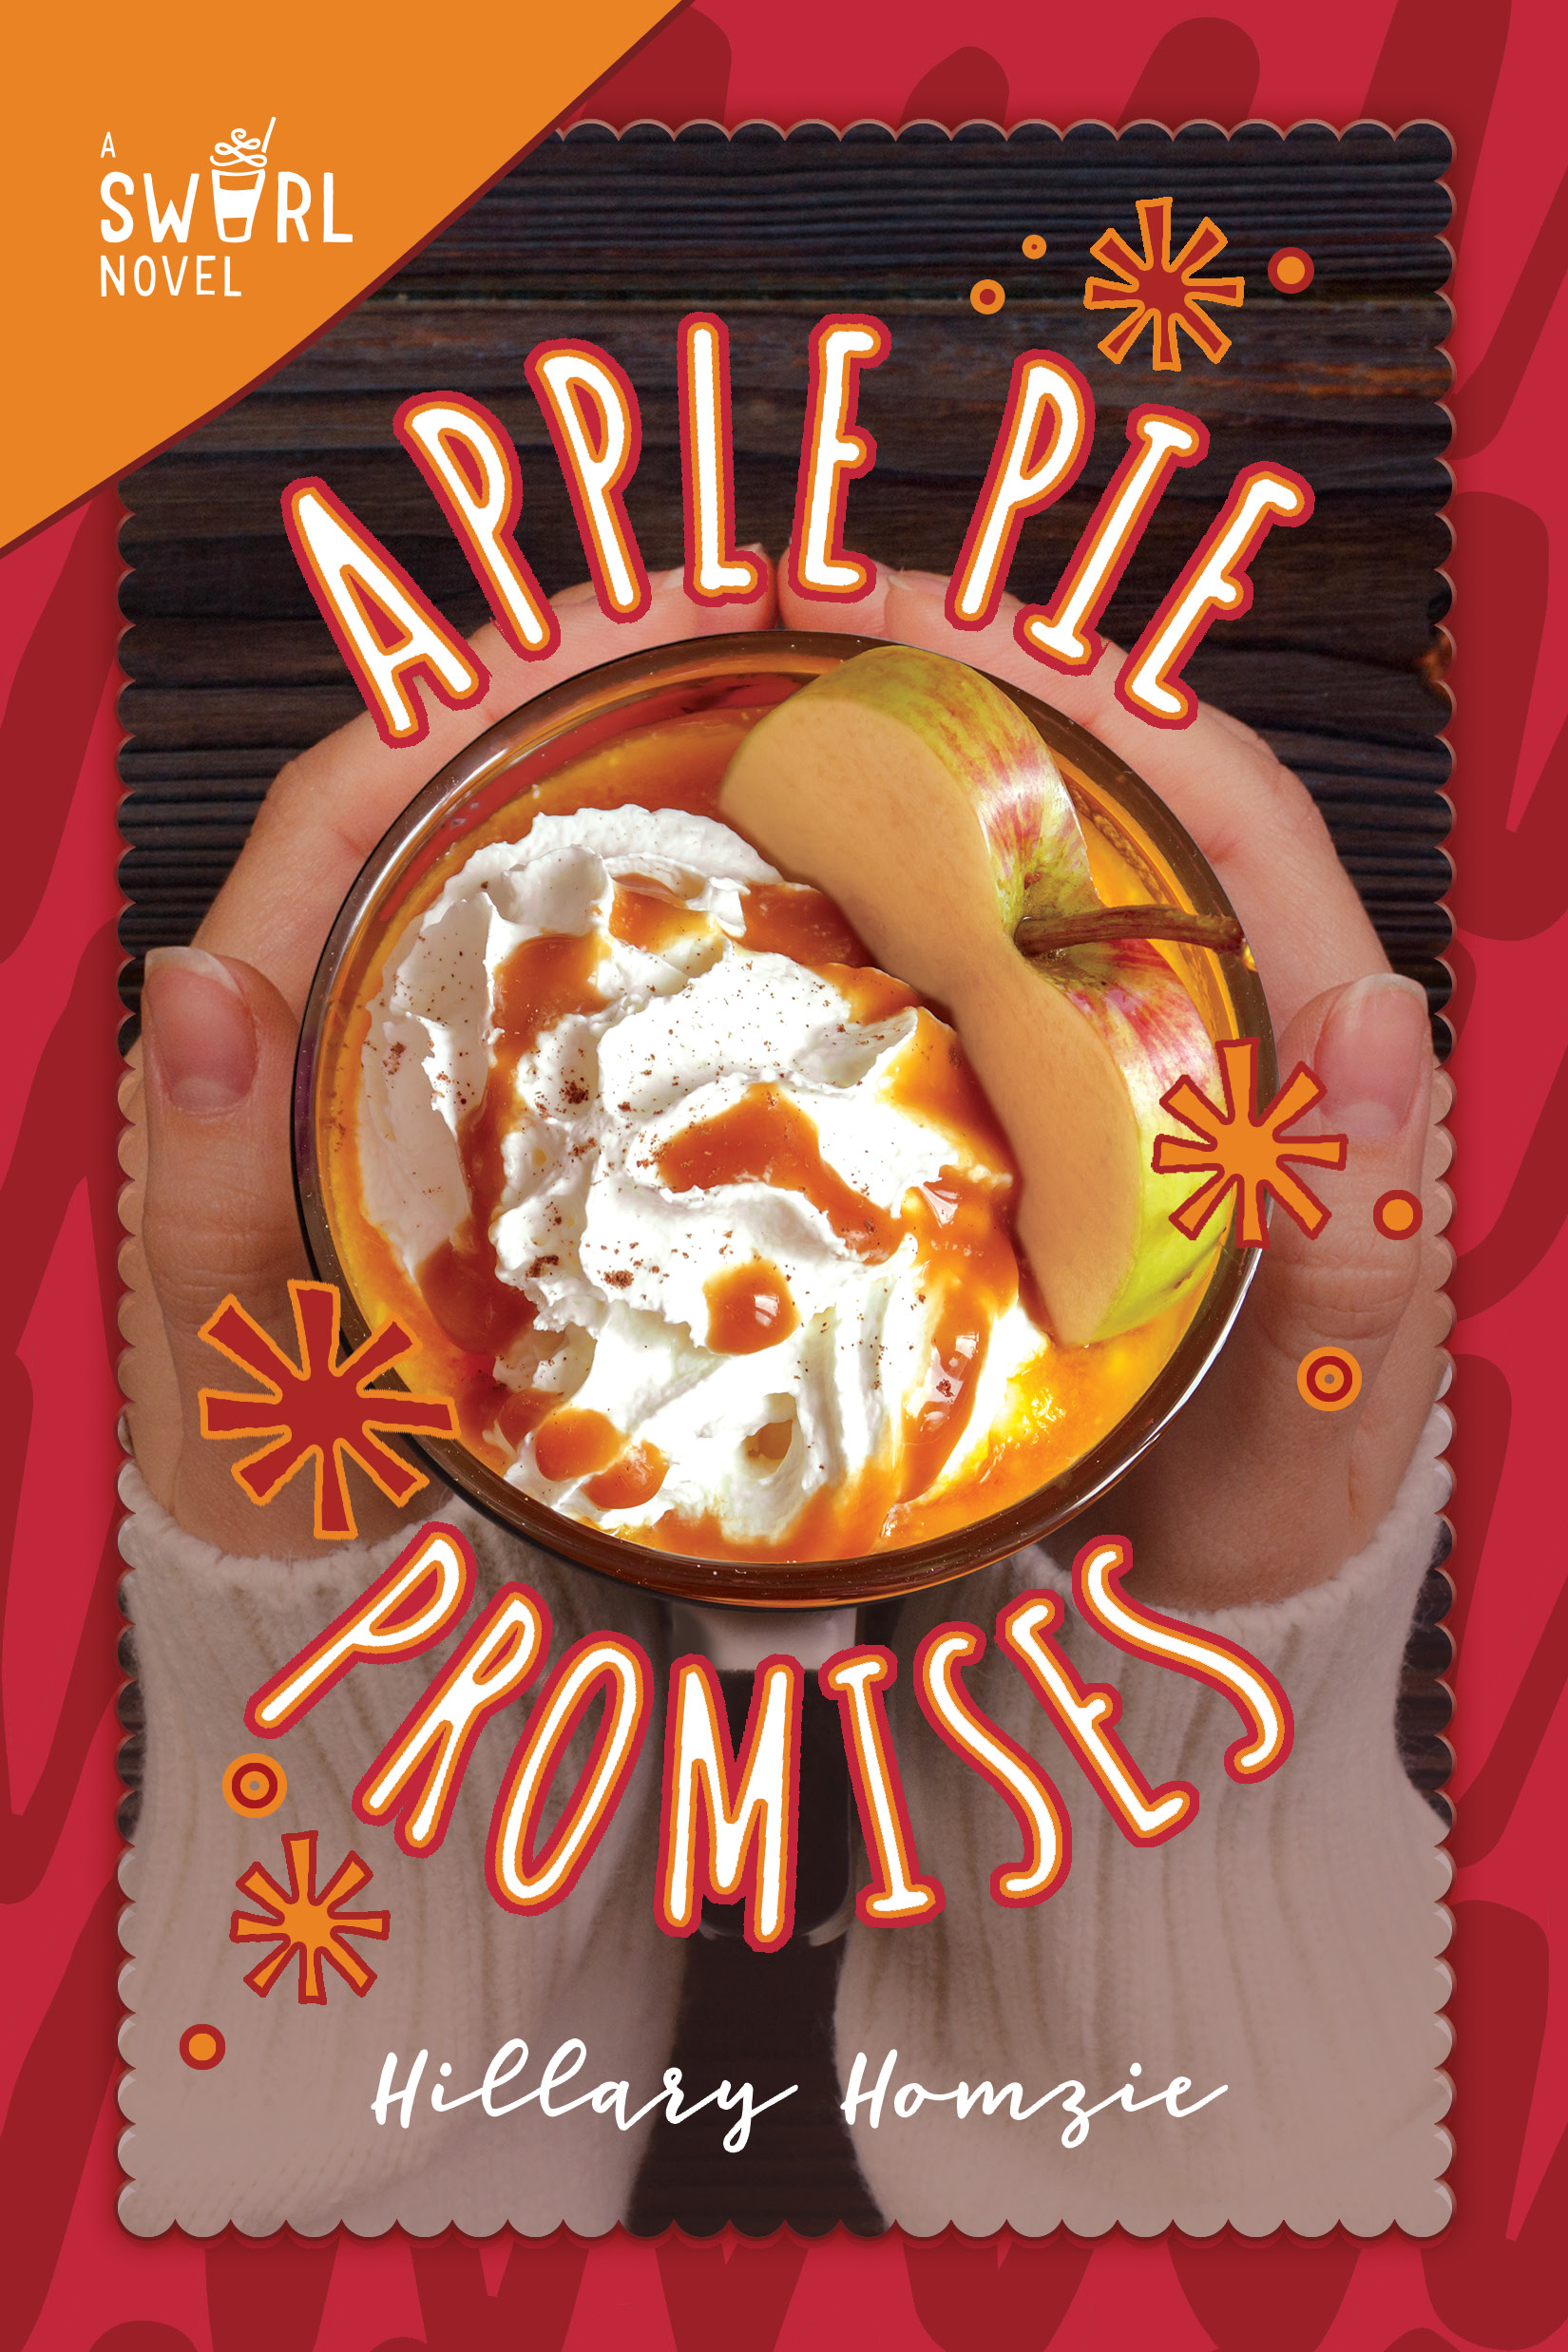 Apple Pie Promises.jpg